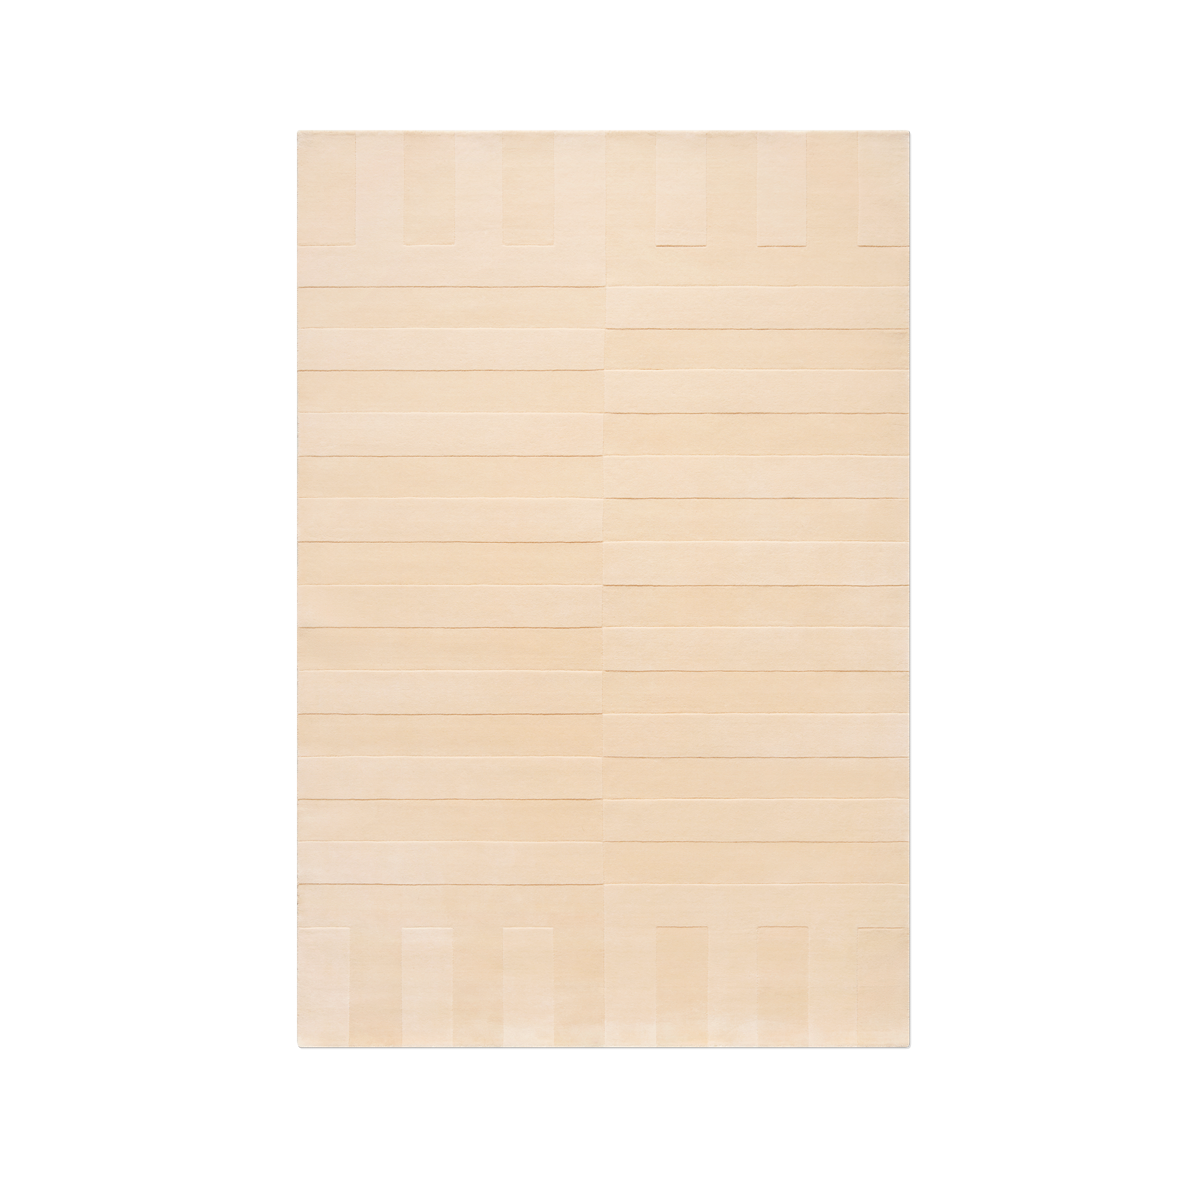 Product image of the plush rug Lux 2 in the color Dusty Apricot . The pile of the rug is cut in different heights creating a blocky pattern across the rug.